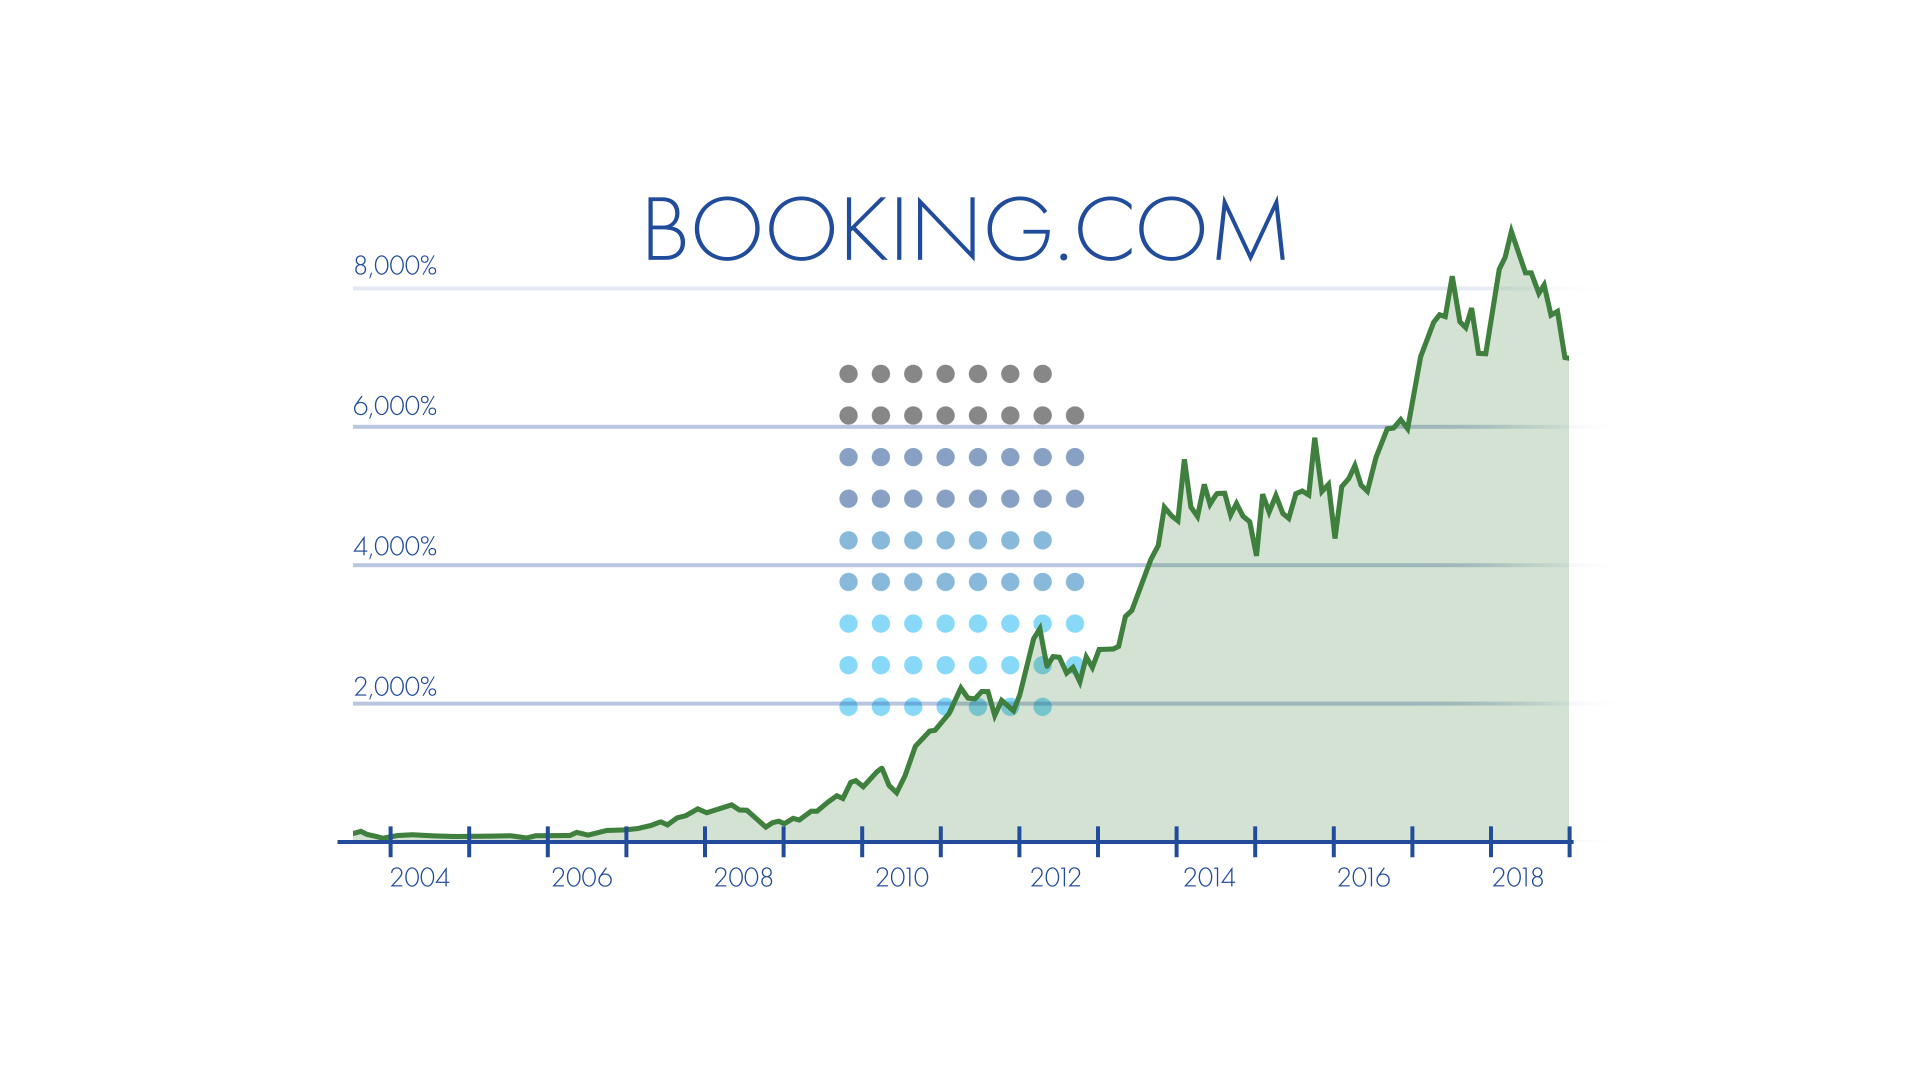 Booking Holdings recommendation up over 7000%